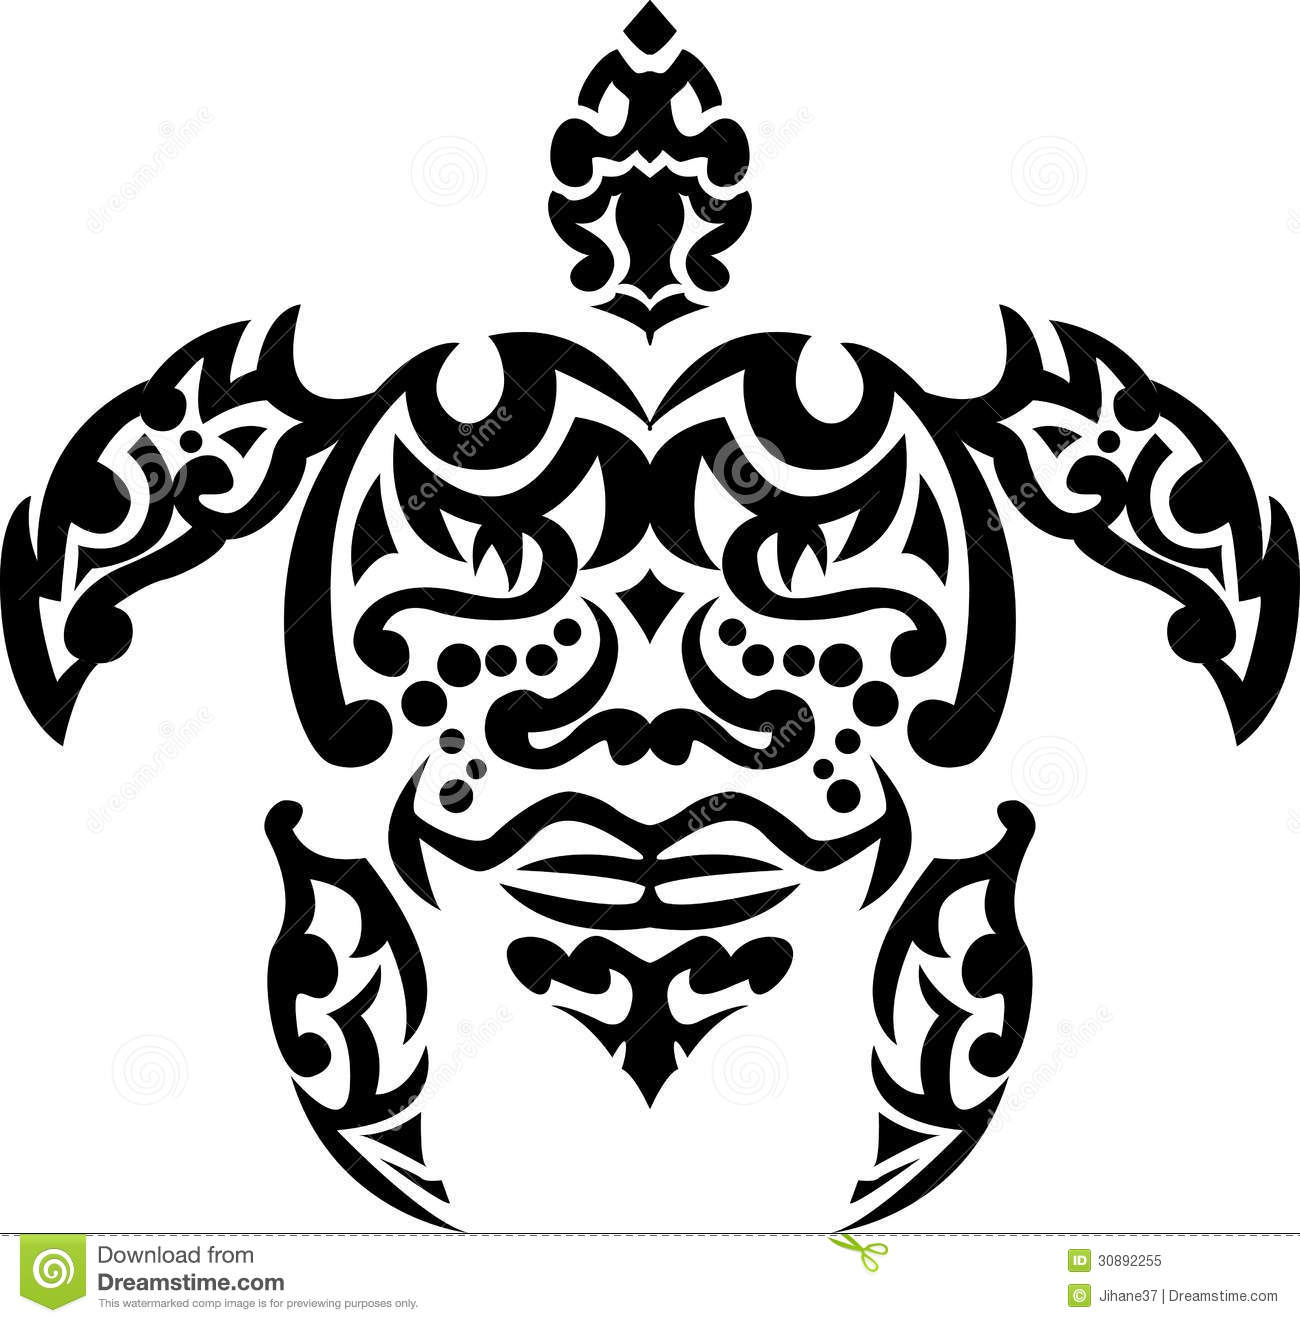 Tortuga tribal del tatuaje for Tortuga maori